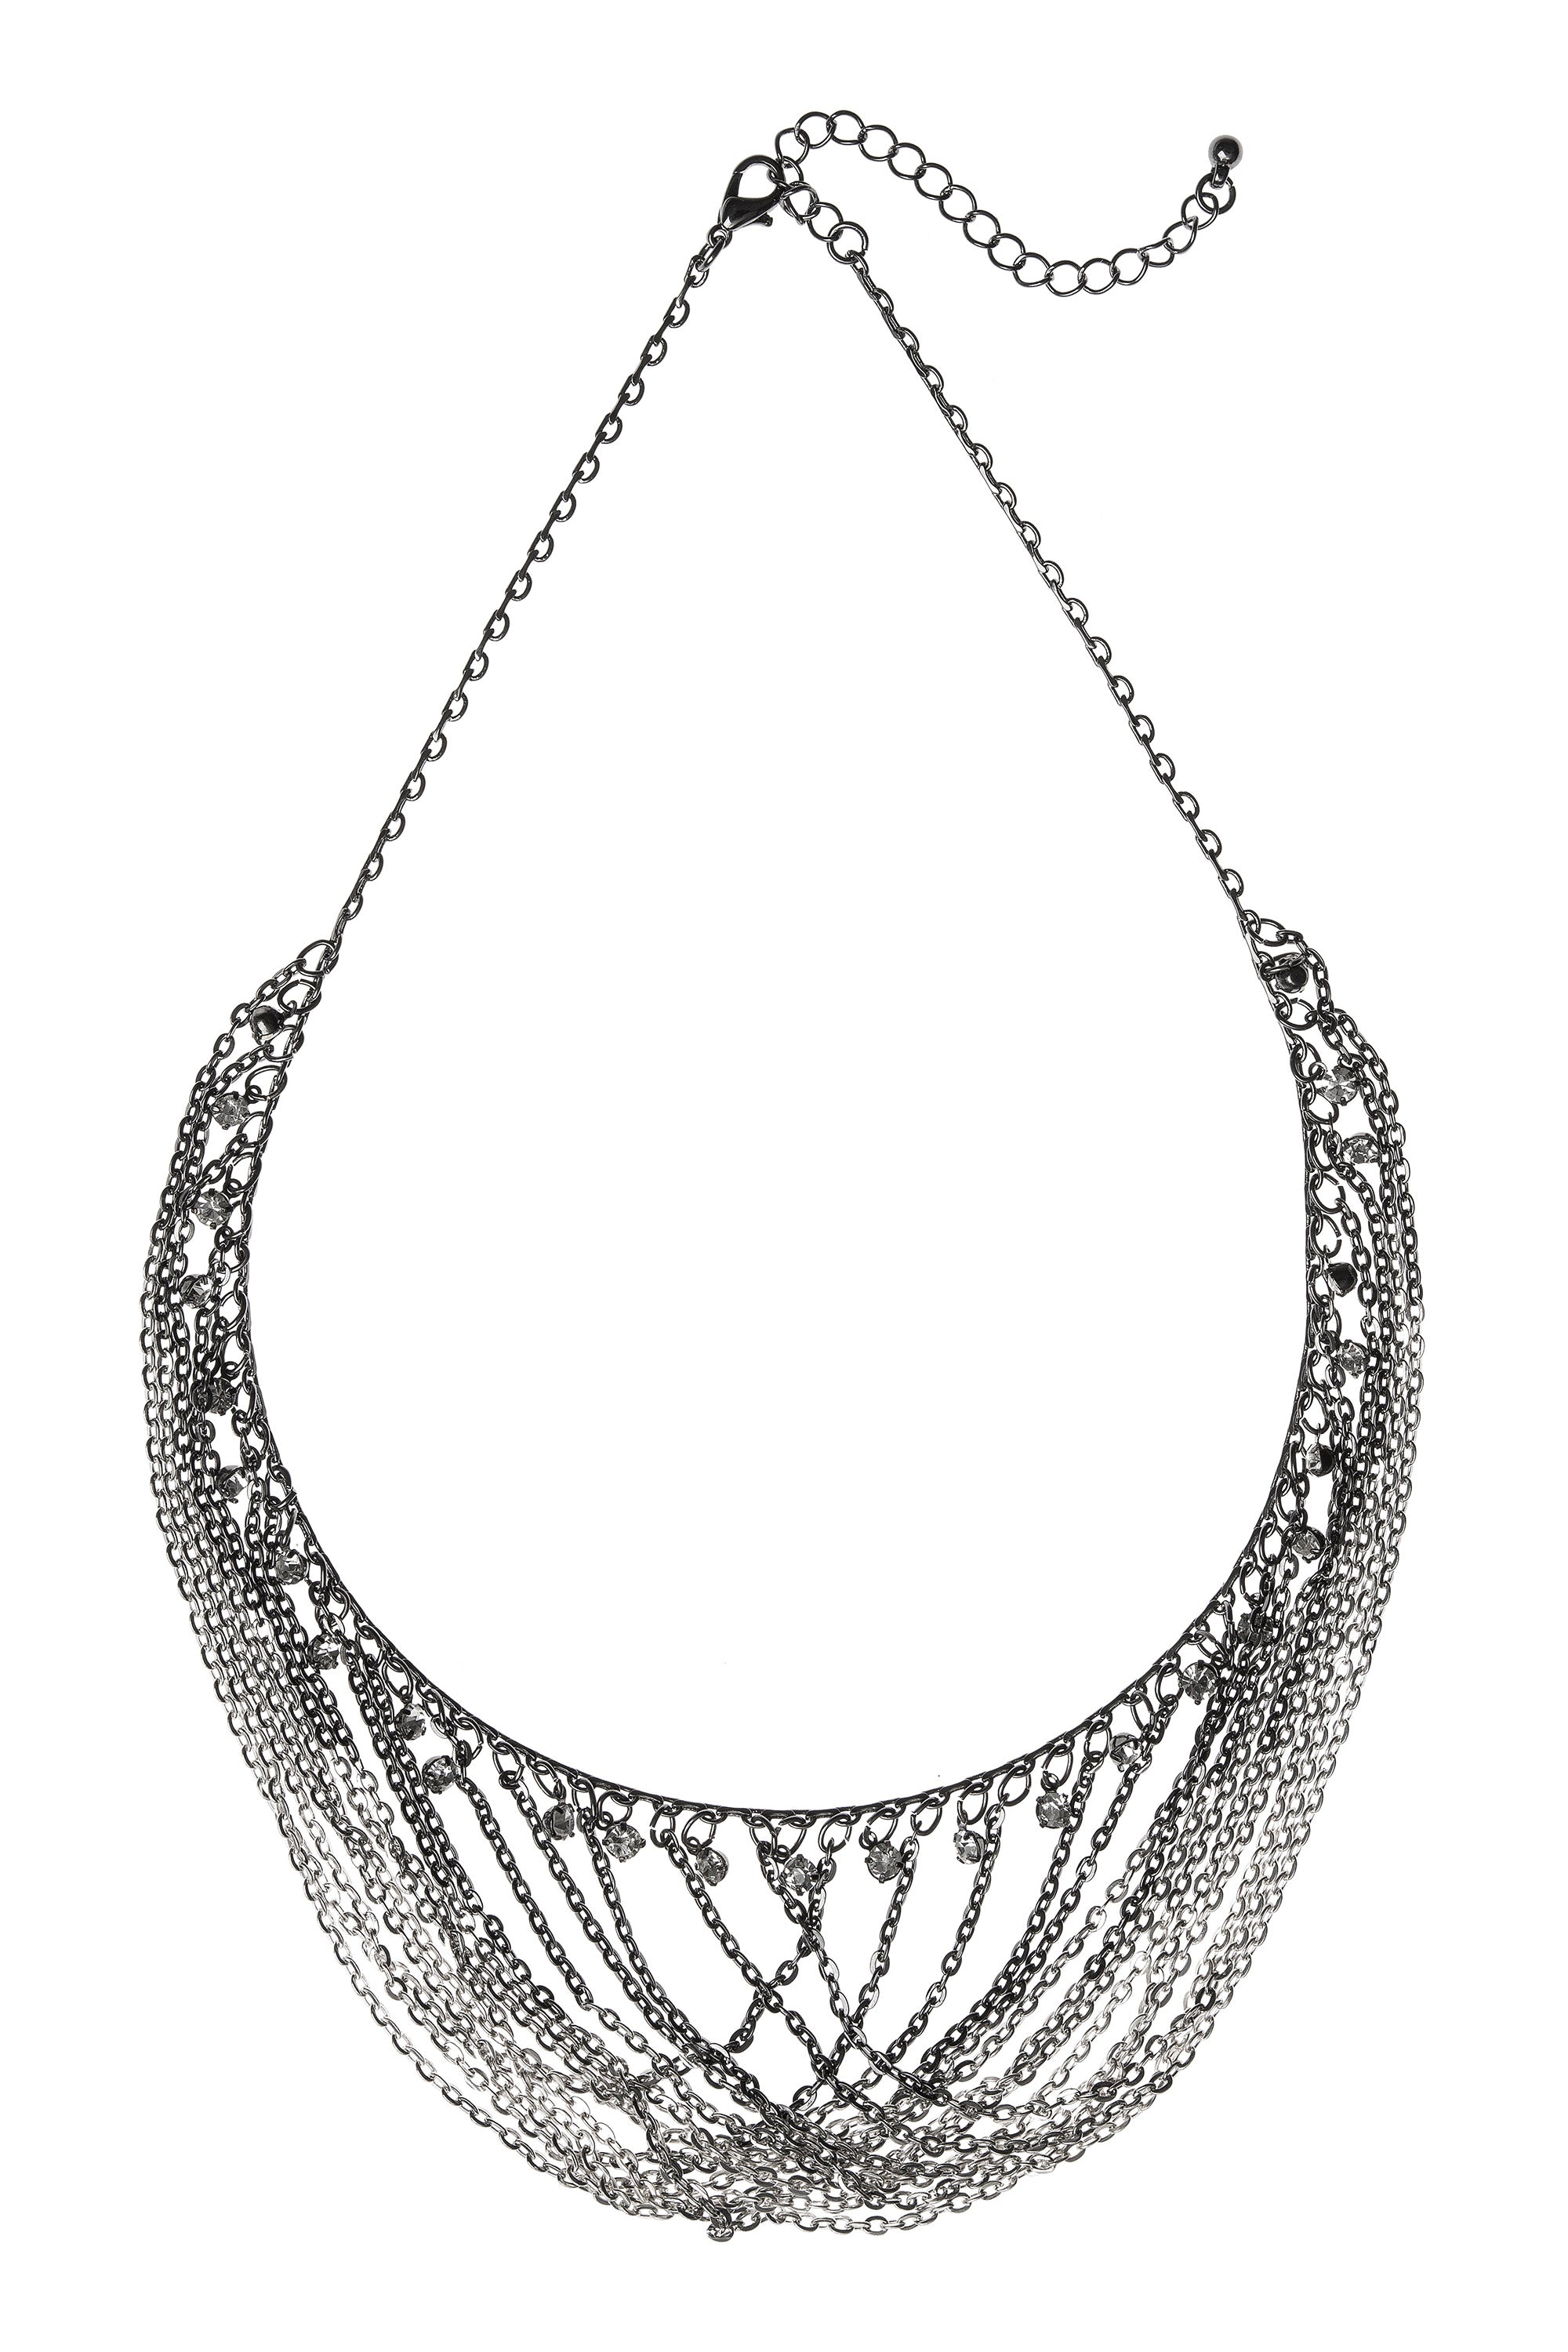 Type 2 Delicate Drape Necklace